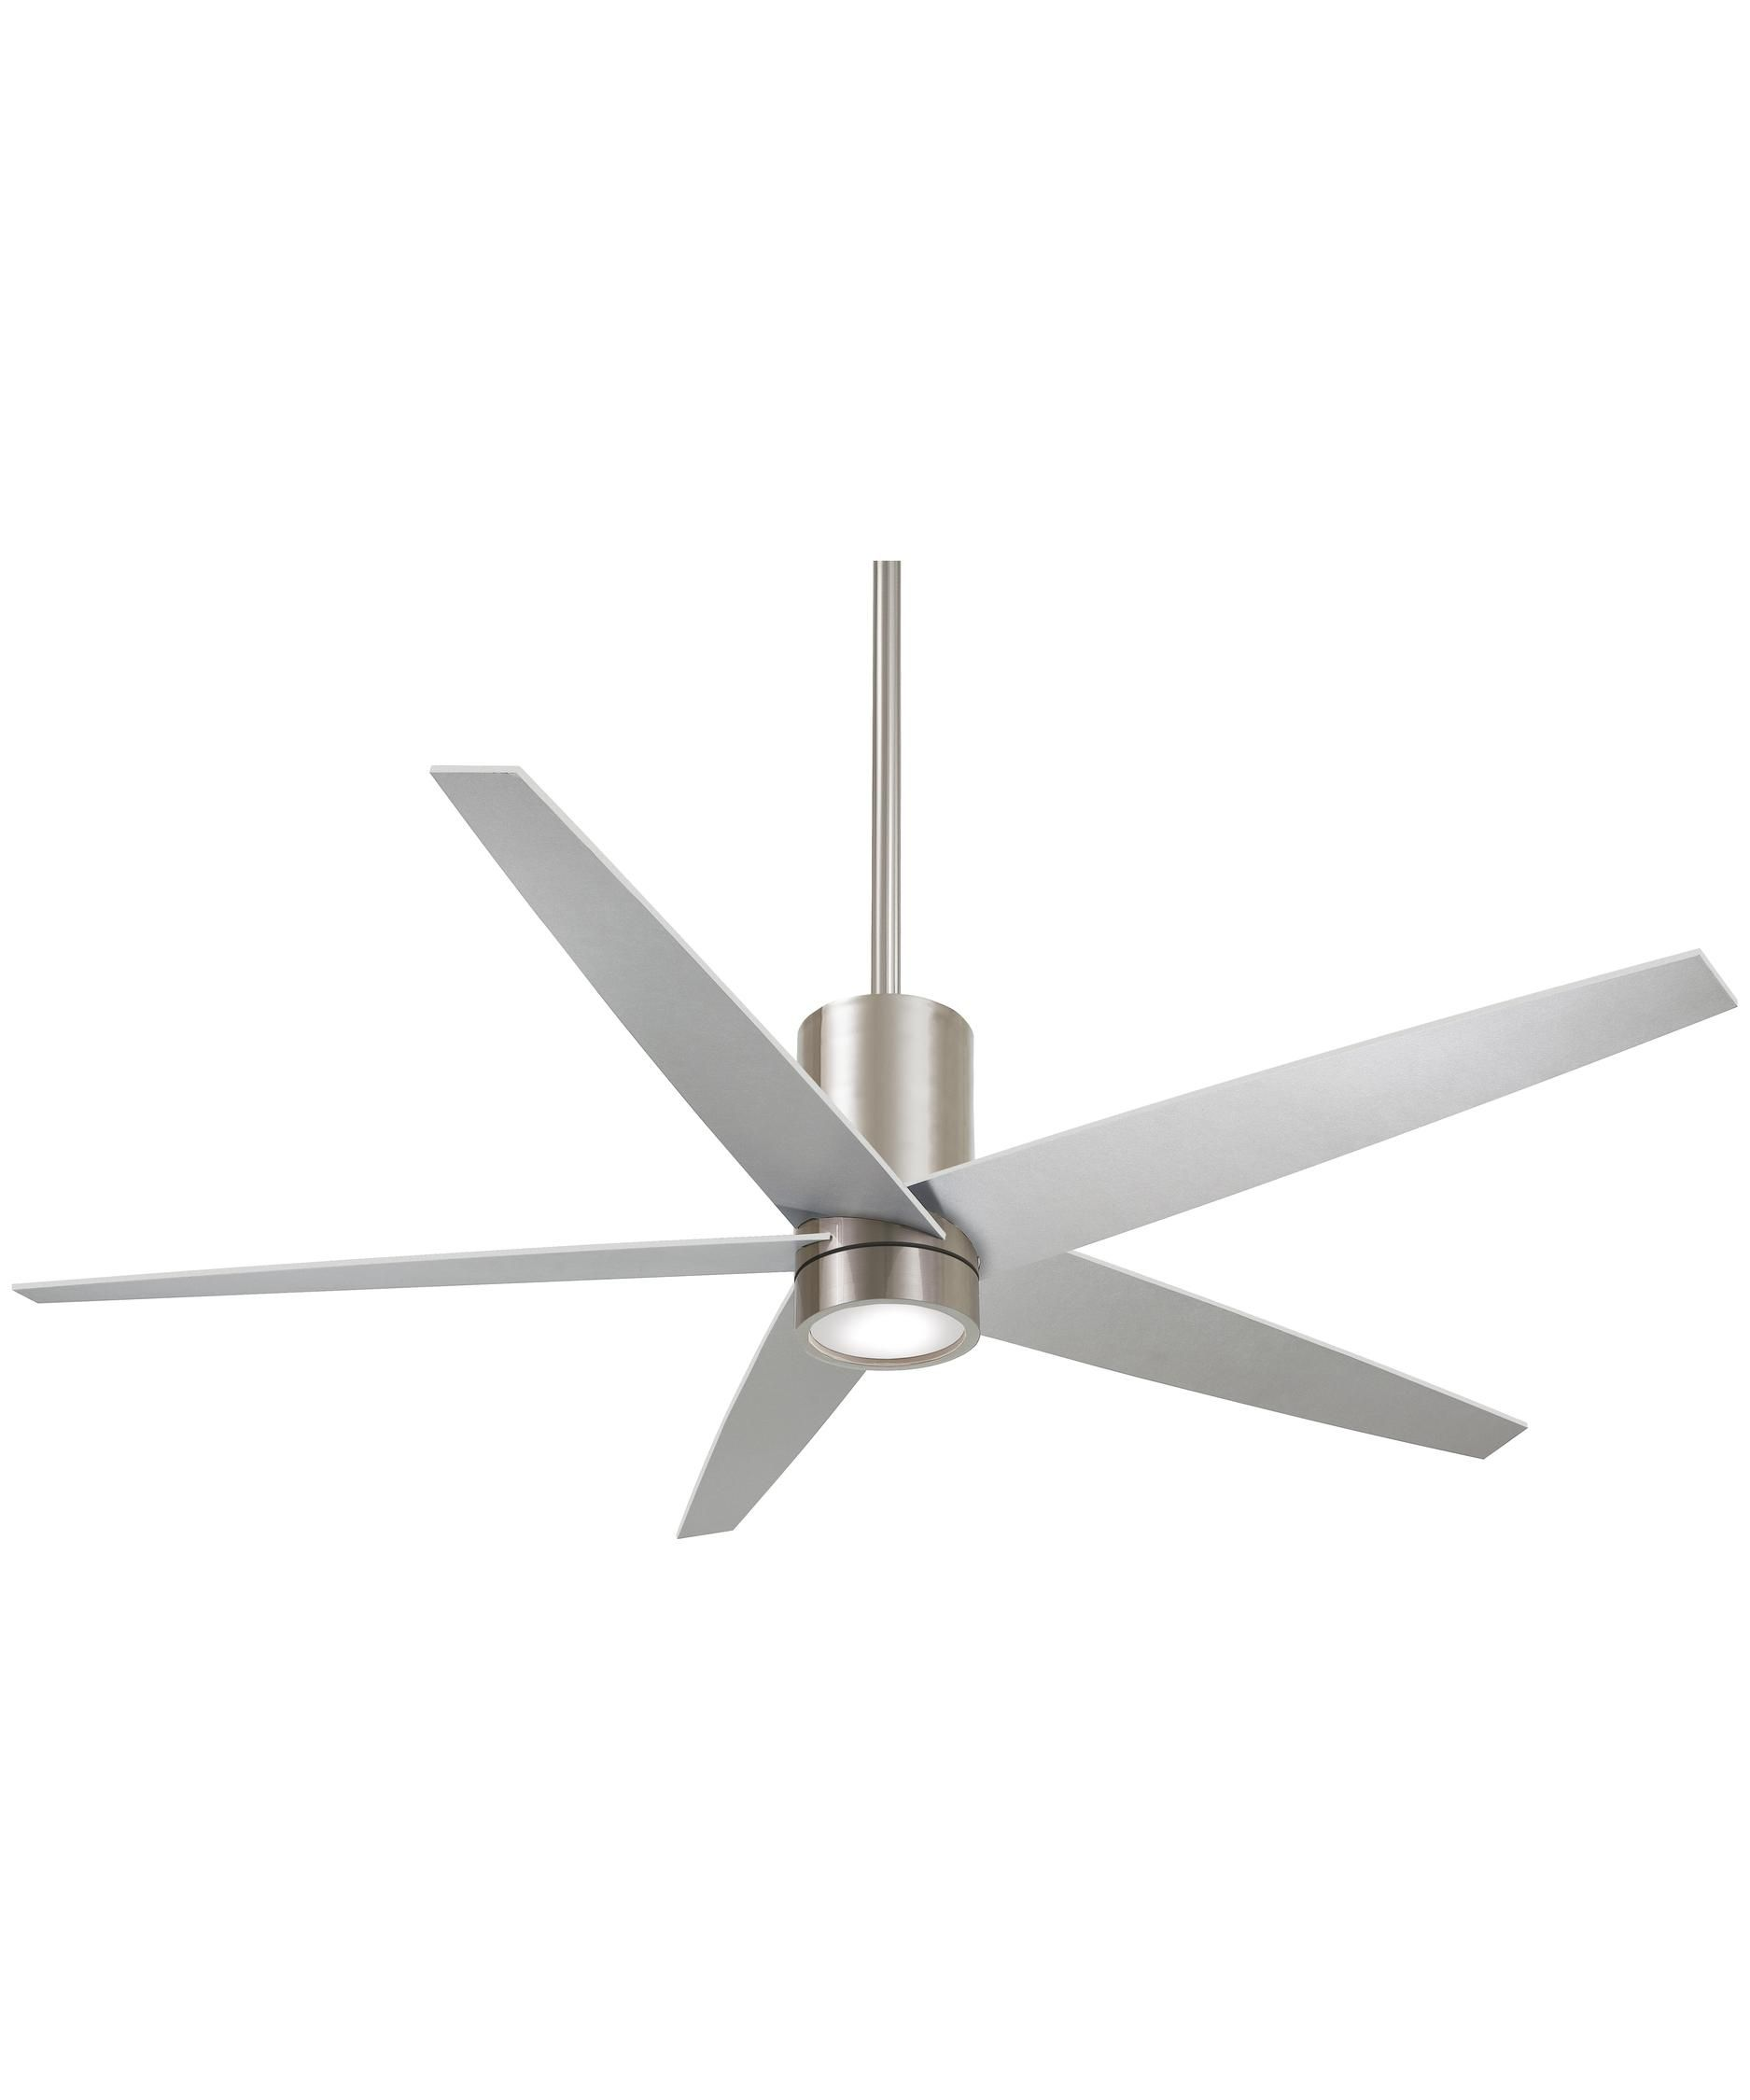 images turbine blade fan ceilings tnrr ceiling monte havells inch capitol lamp hunter carlo